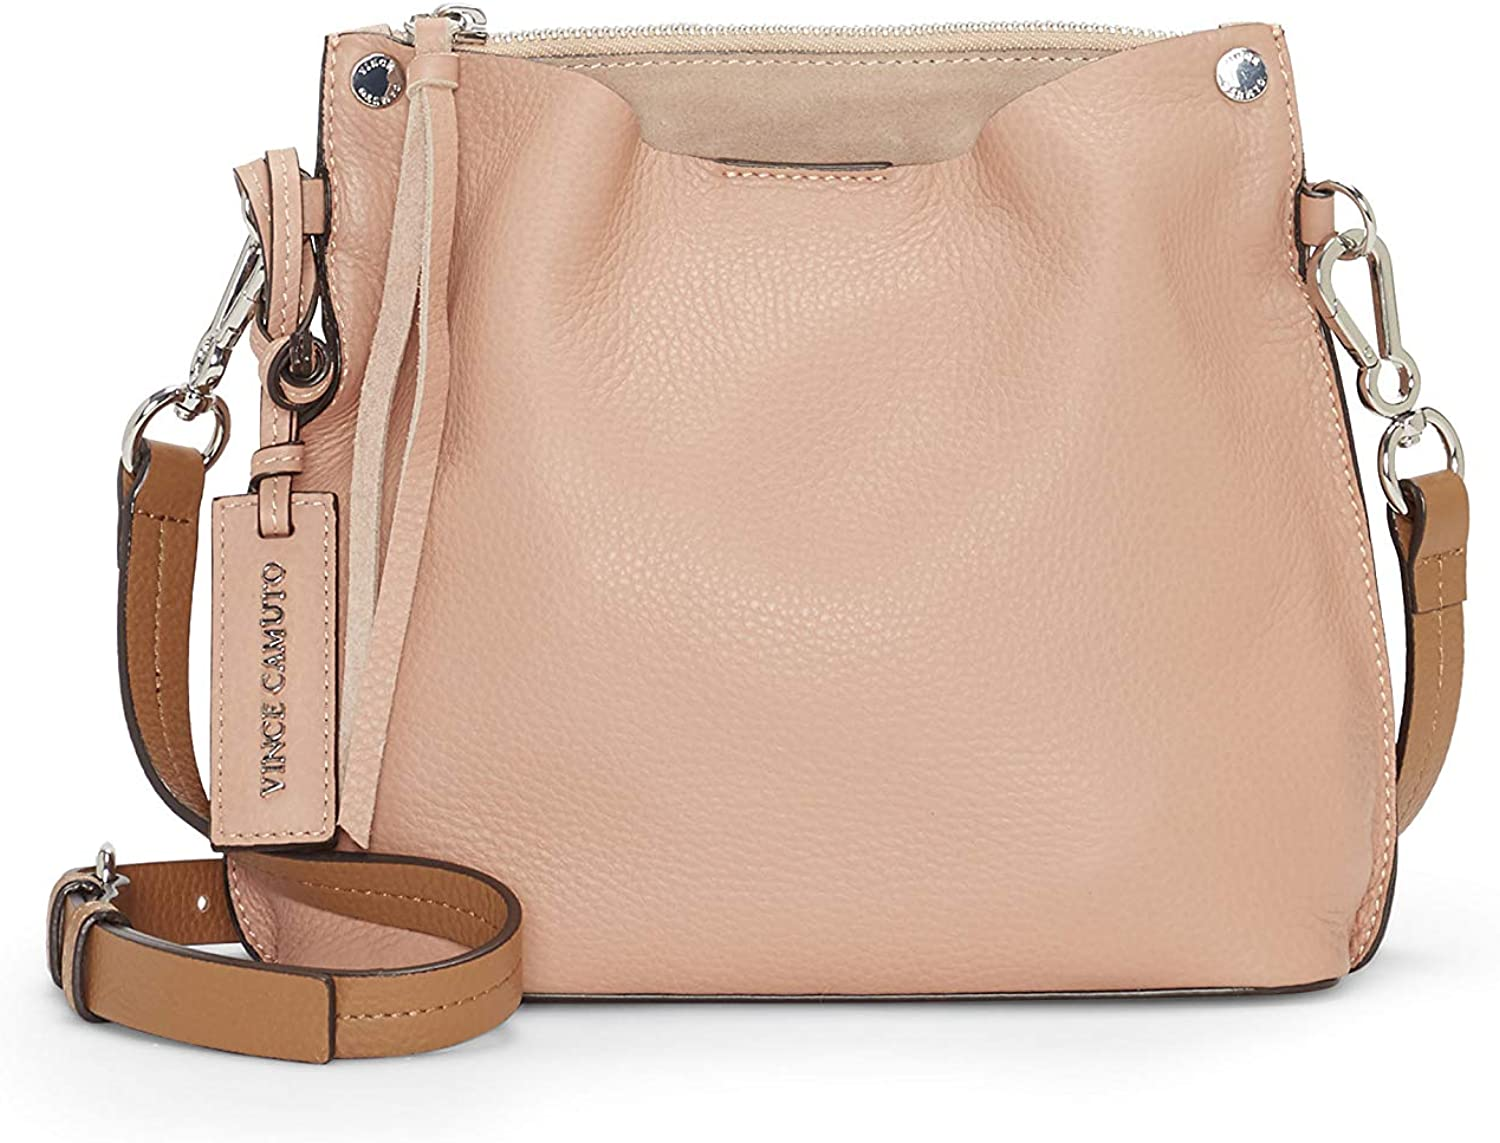 Vince Camuto 67% OFF of Ranking TOP1 fixed price Crossbody Mayln